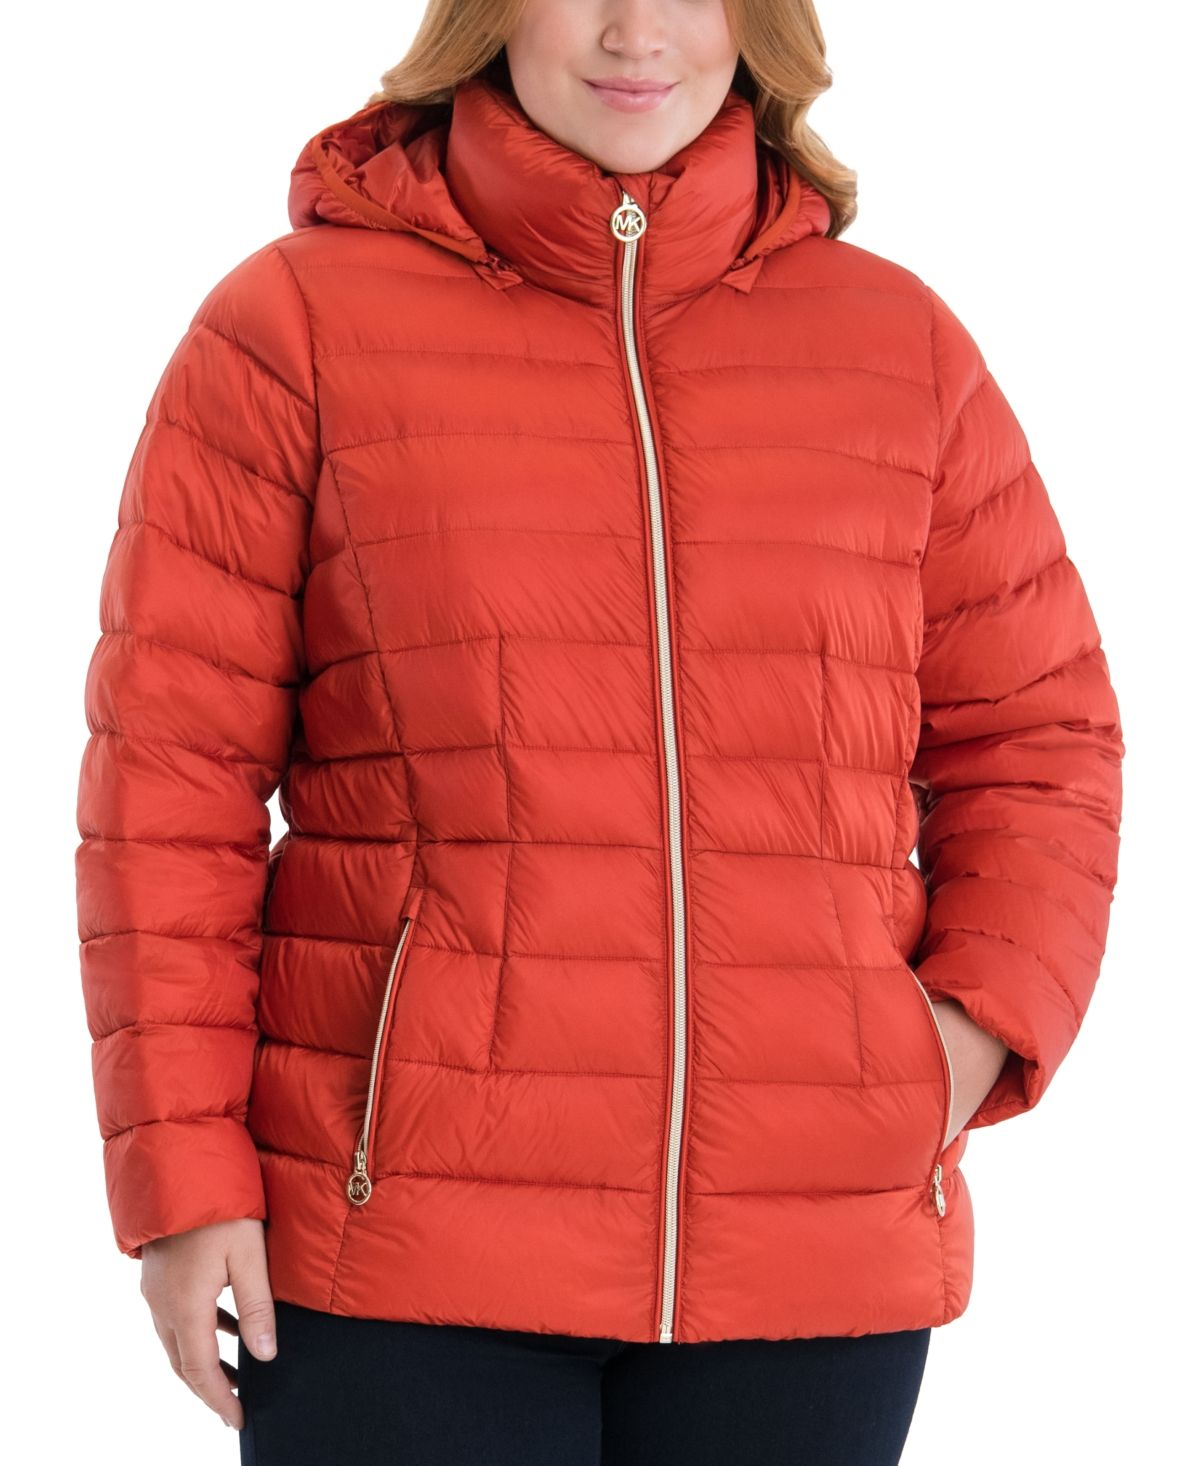 Michael Kors Plus Size Hooded Packable Puffer Coat Created For Macy S Reviews Coats Plus Sizes Macy S Puffer Coat Packable Puffer [ 1466 x 1200 Pixel ]